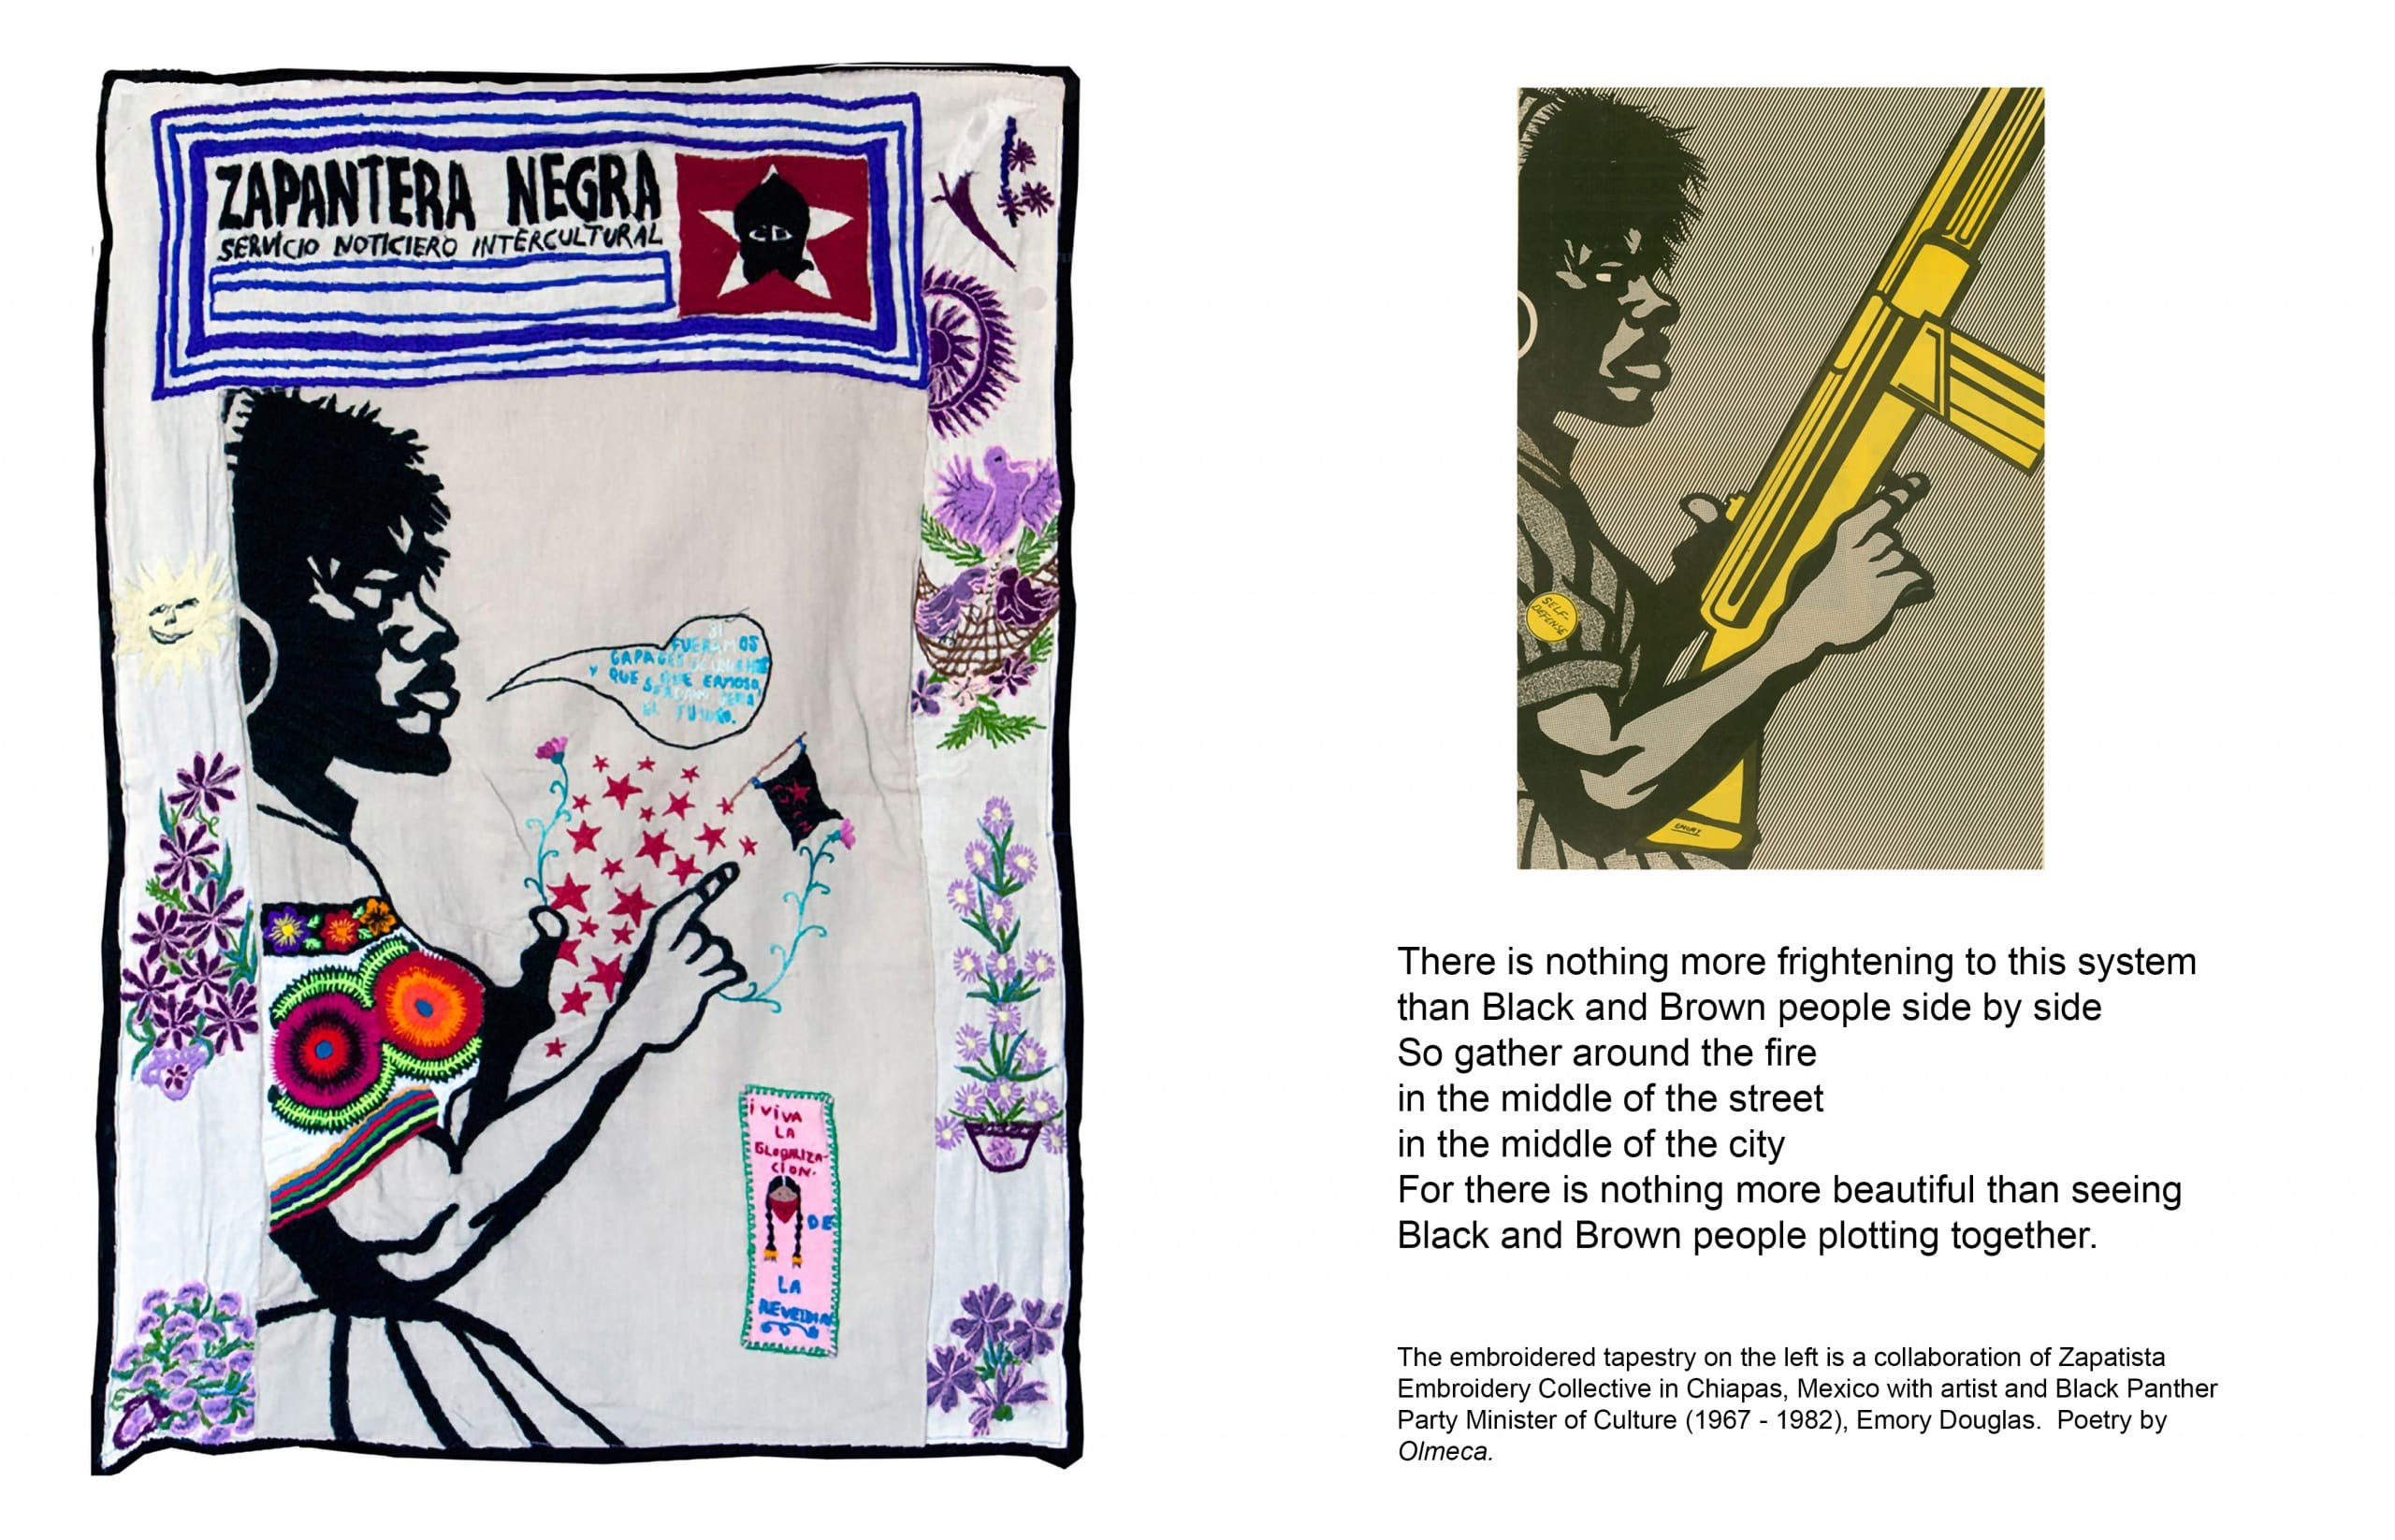 To left, an embroidery made by the Zapatista Embroidery Collective, based on an image drawn by Emory Douglas of a woman armed and ready for revolution, which appears to the right of the layout. In the embroidery version, the woman's gun has been replaced with flowers, stars, and the Zapatista flag and her military-style garments have been replaced with traditional huipil style dress. Below the original Douglas image, a poem appears